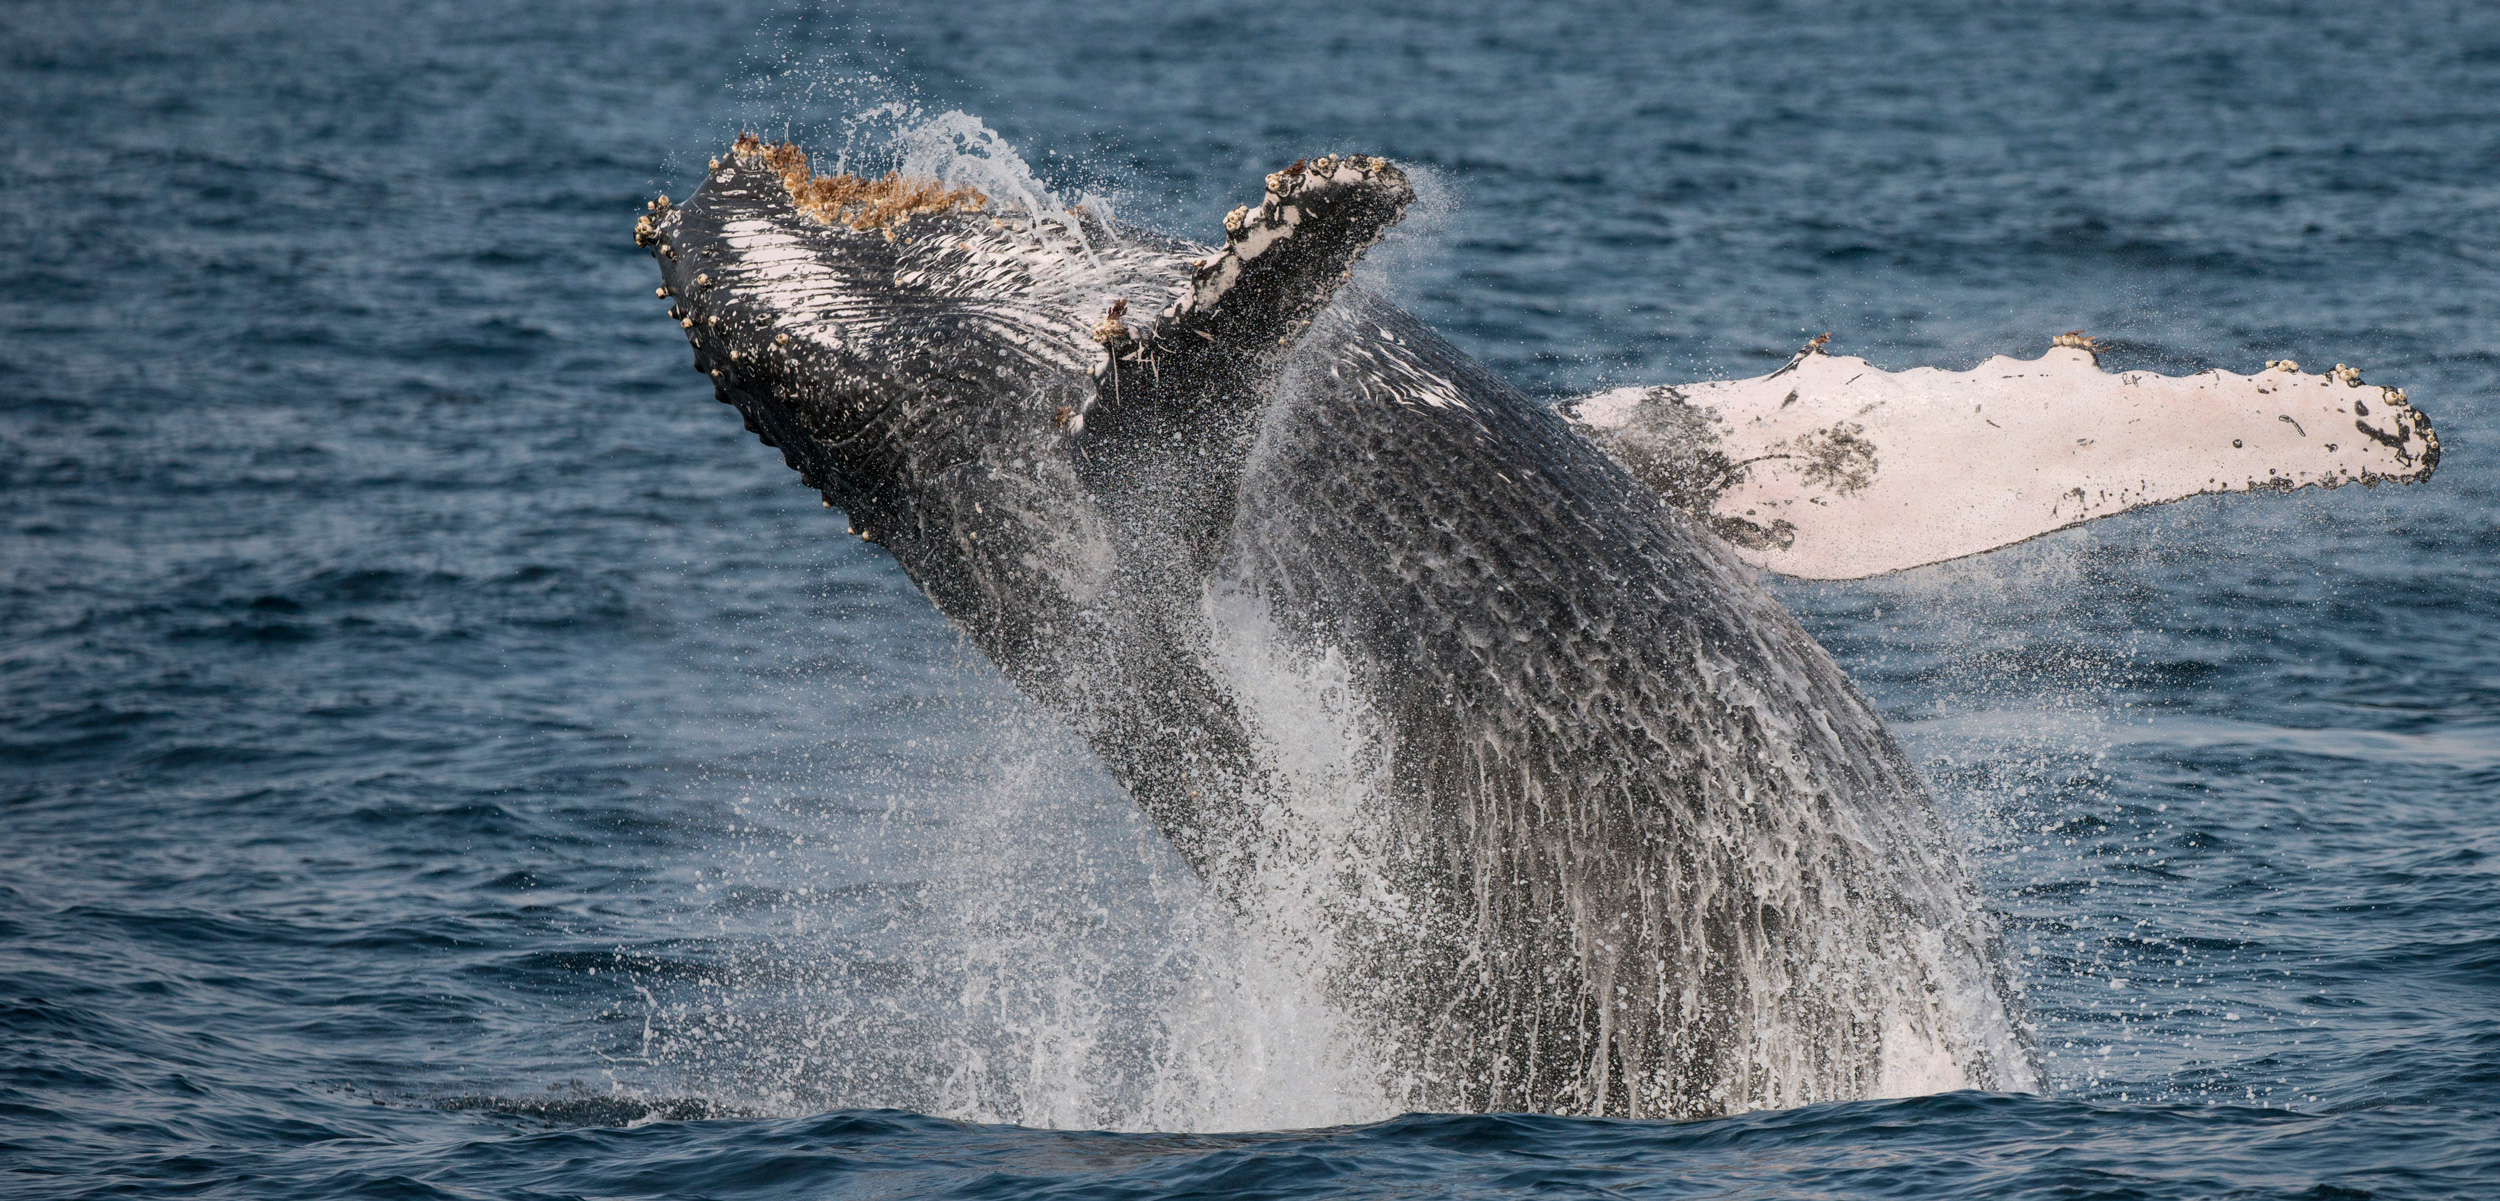 One Of The Most Frequently Asked Questions About Whales Is Why They Breach.  A Study